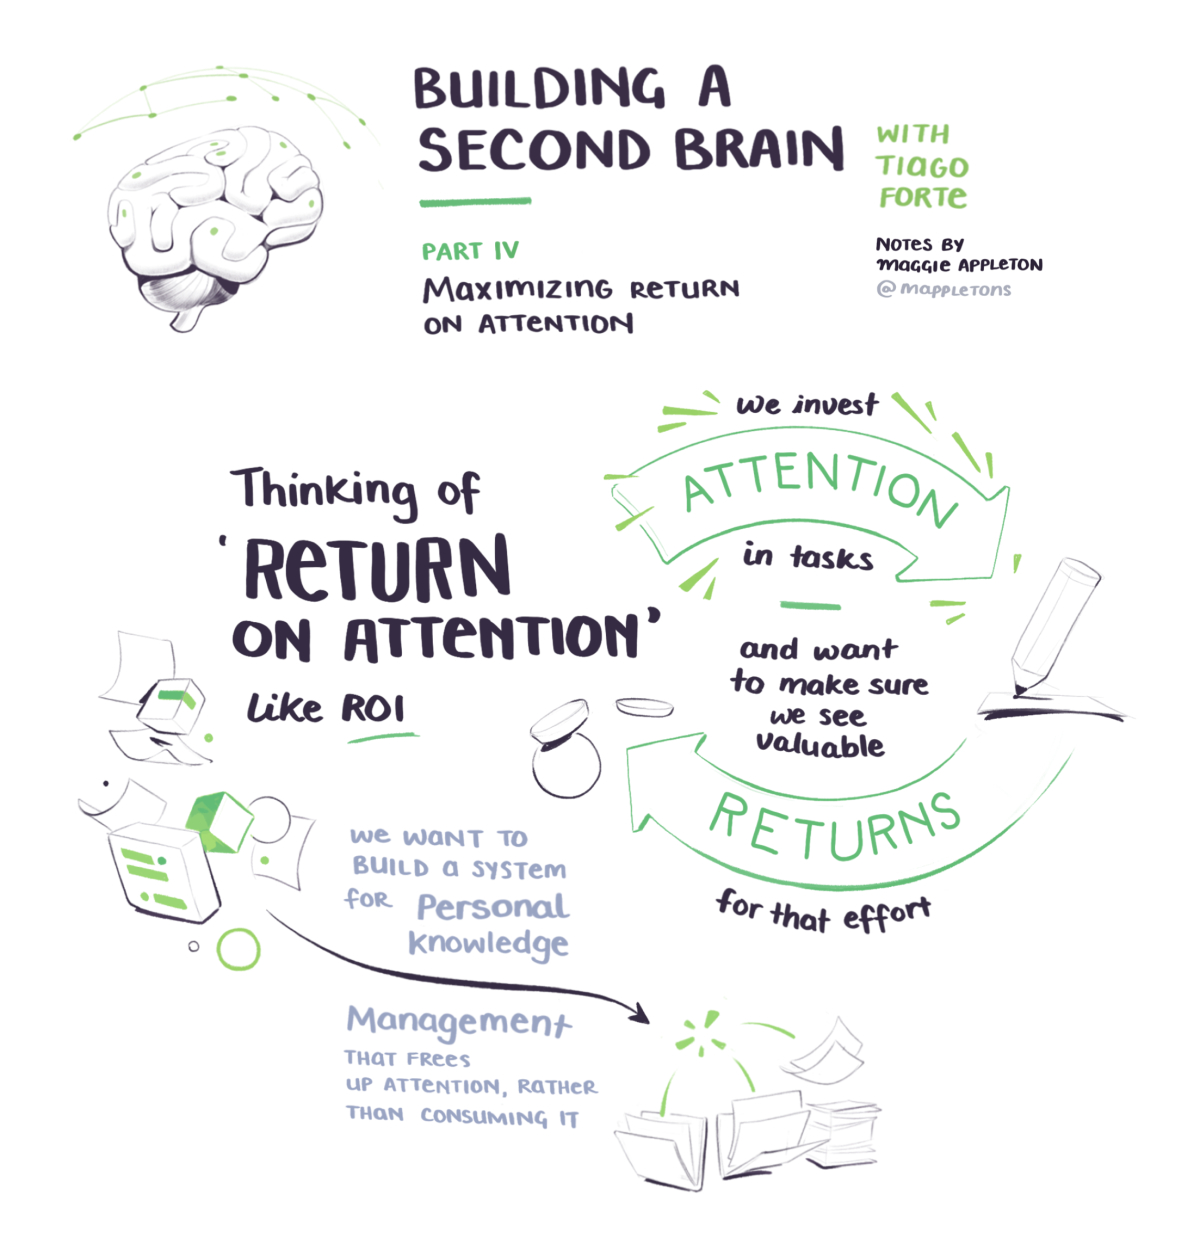 BASB sketchnotes on thinking of return on attention like ROI